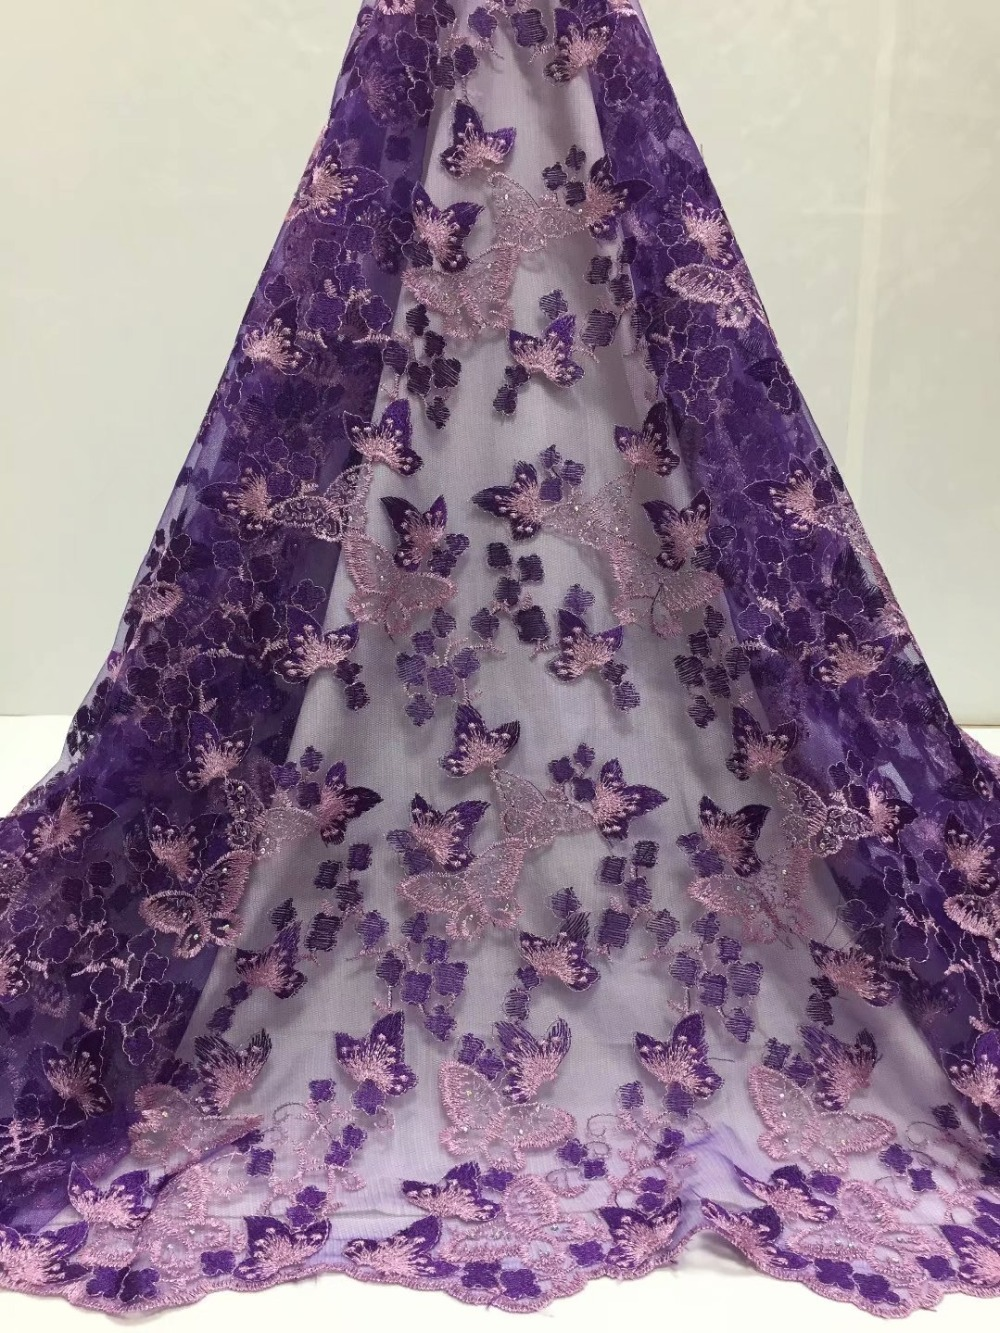 Latest French Nigerian Laces Fabrics High Quality Tulle African Laces Fabric Wedding African French Tulle Lace    YDMAY114Latest French Nigerian Laces Fabrics High Quality Tulle African Laces Fabric Wedding African French Tulle Lace    YDMAY114